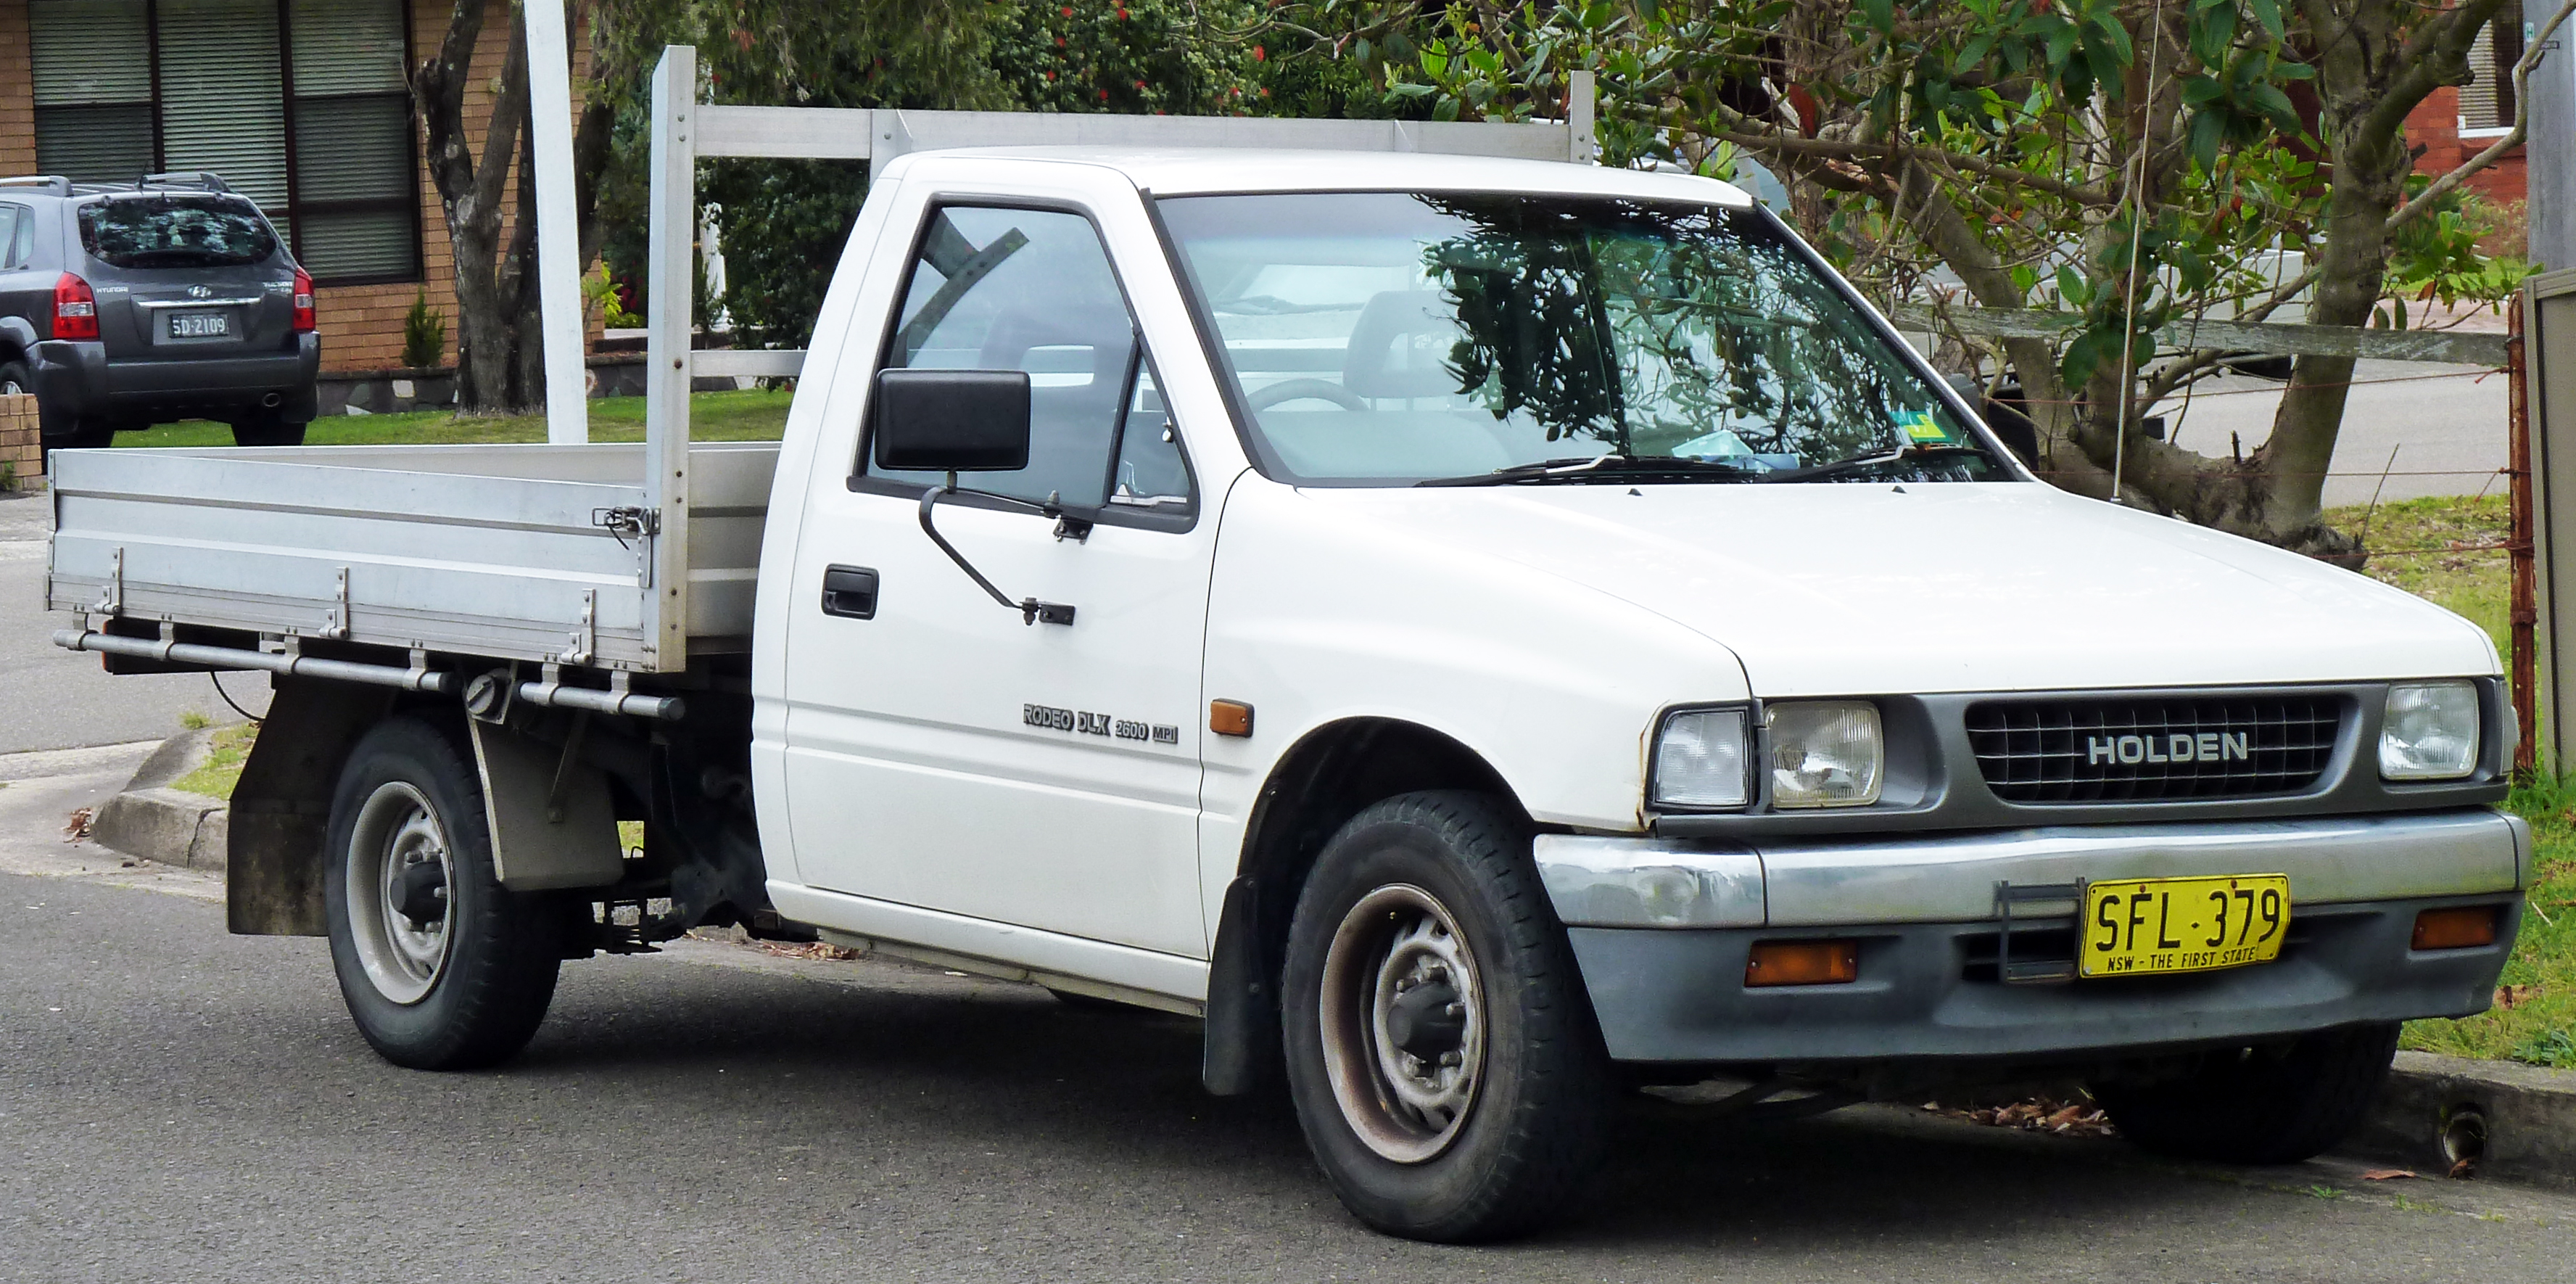 I'm looking for a service and repair manual for a 1999 Isuzu amigo.?